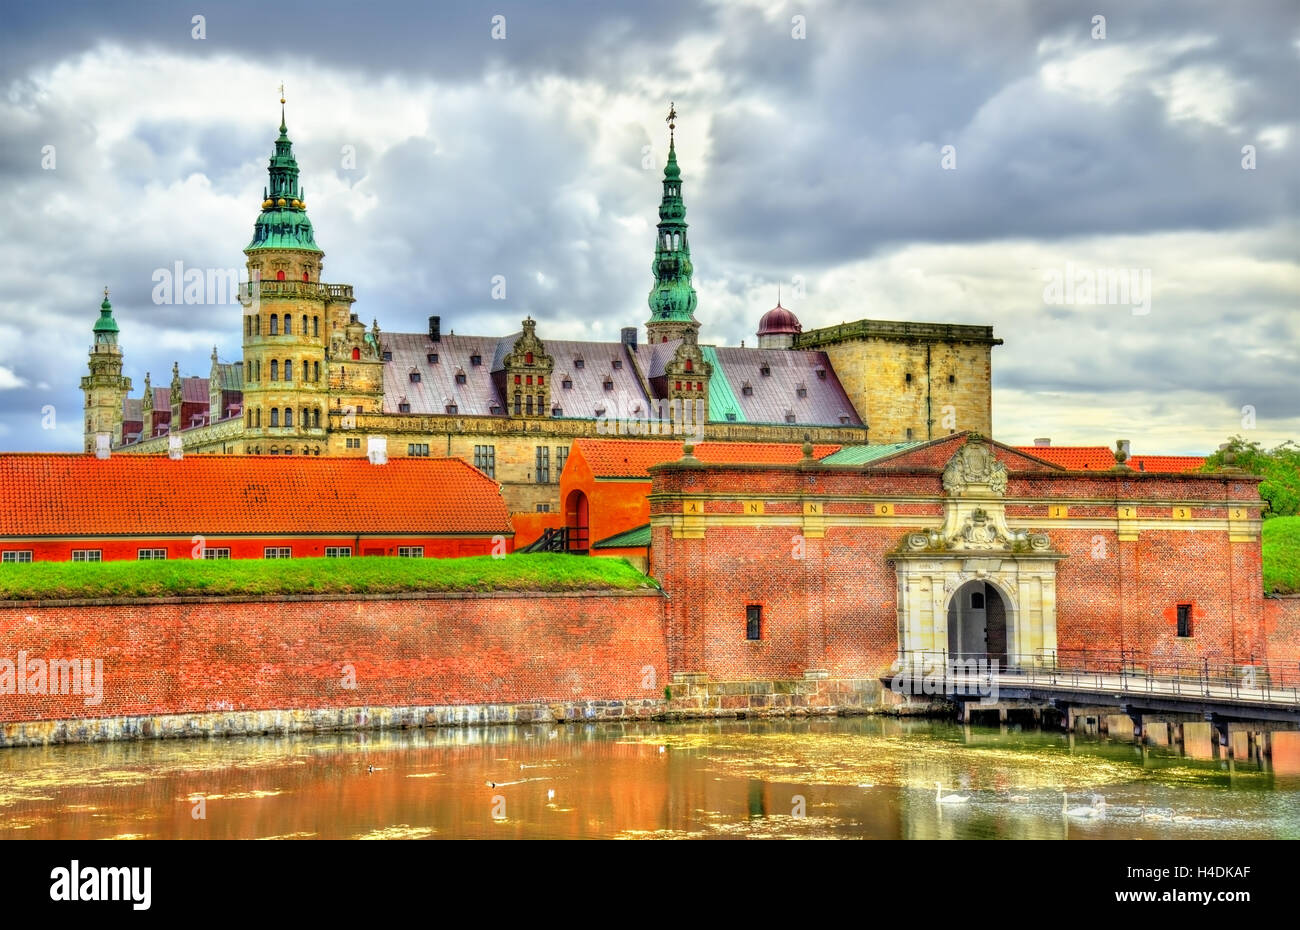 Kronborg Castle, known as Elsinore in the Tragedy of Hamlet - Helsingor, Denmark - Stock Image